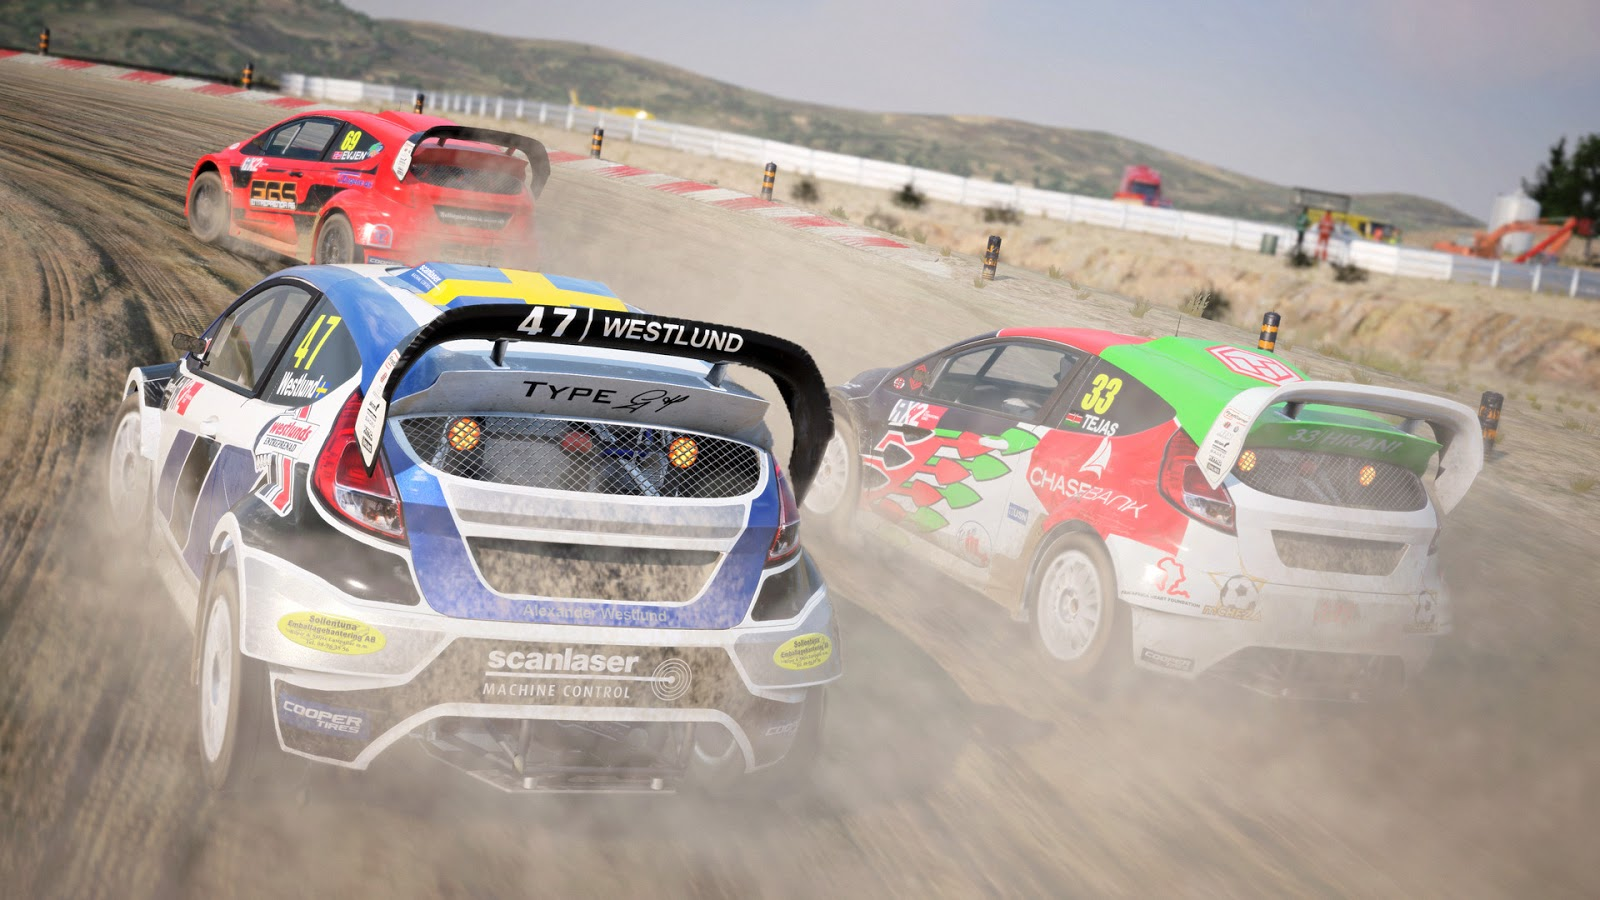 DiRT 4 ESPAÑOL PC (RELOADED) + Update v1.06 (BAT) + REPACK 5 DVD5 (JPW) 5